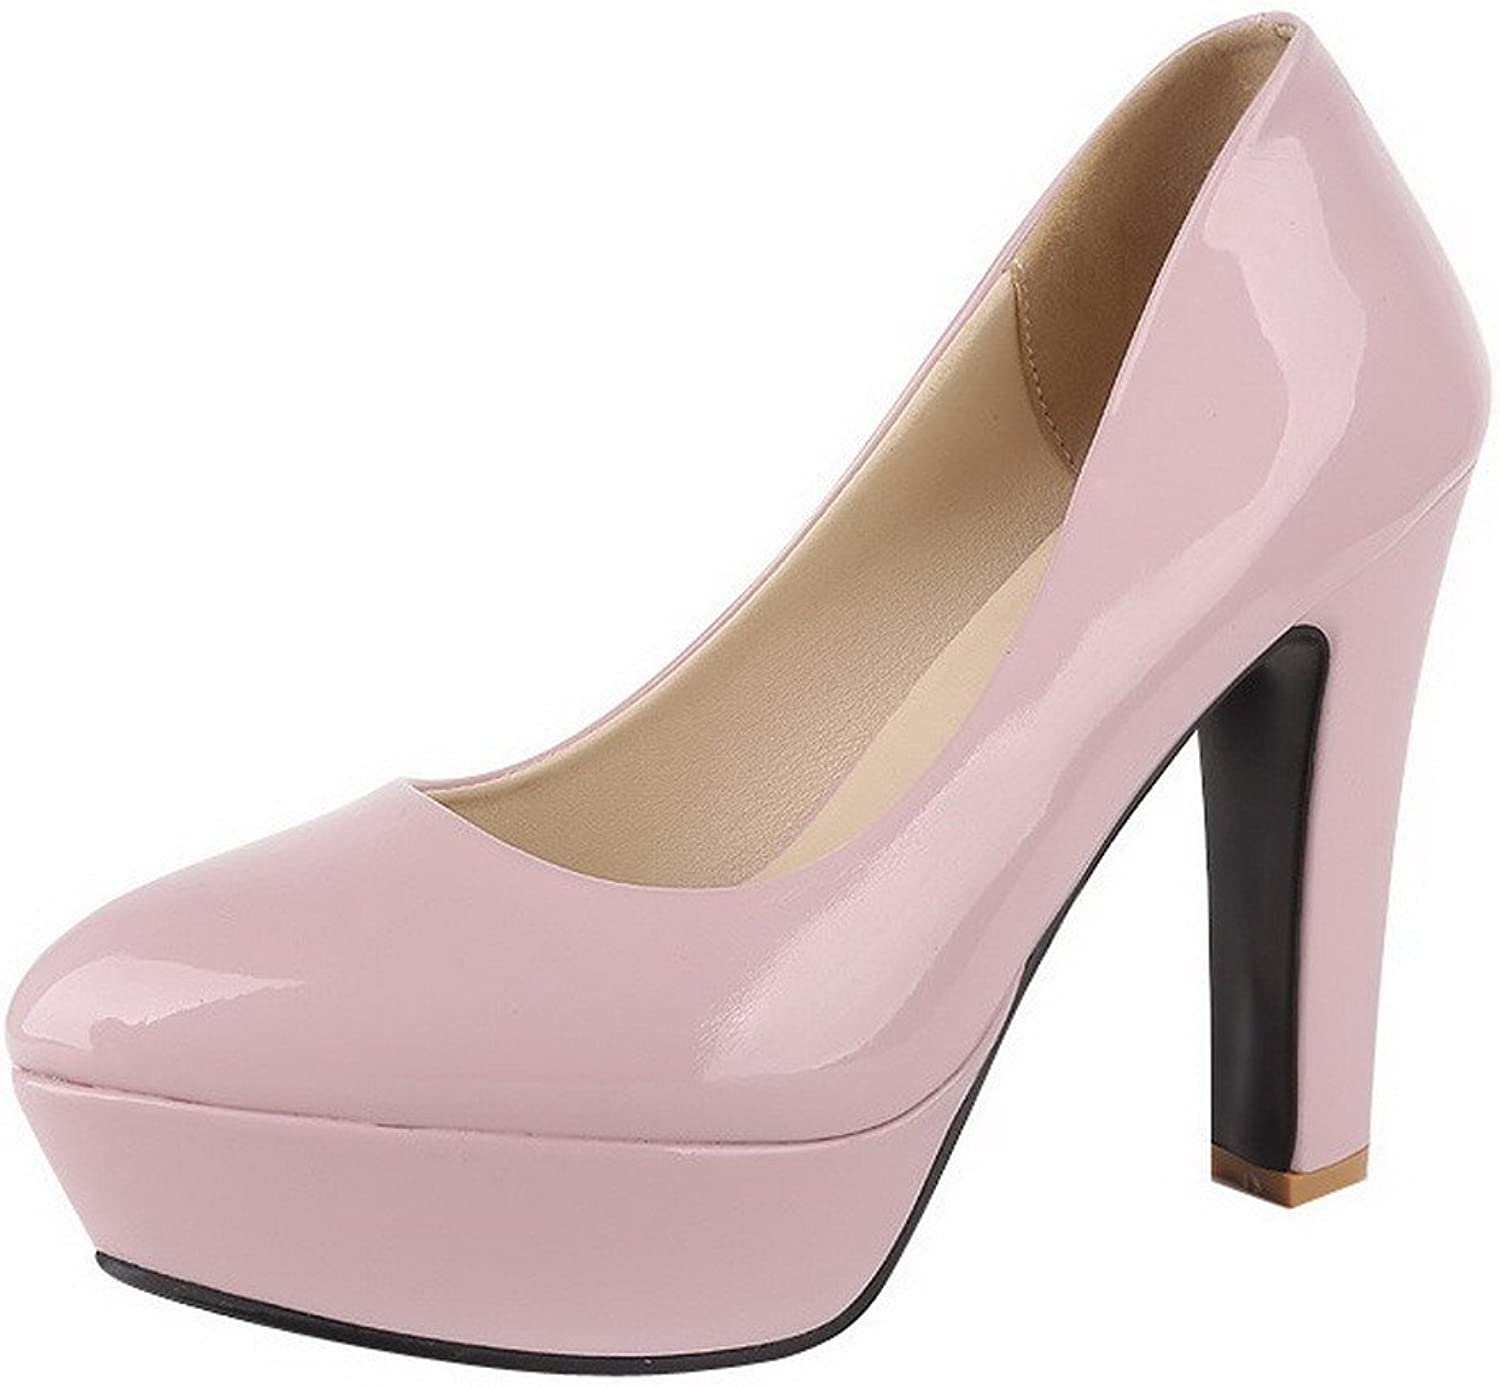 AllhqFashion Women's Patent Leather Round Closed Toe High-Heels Pull-on Solid Pumps-shoes